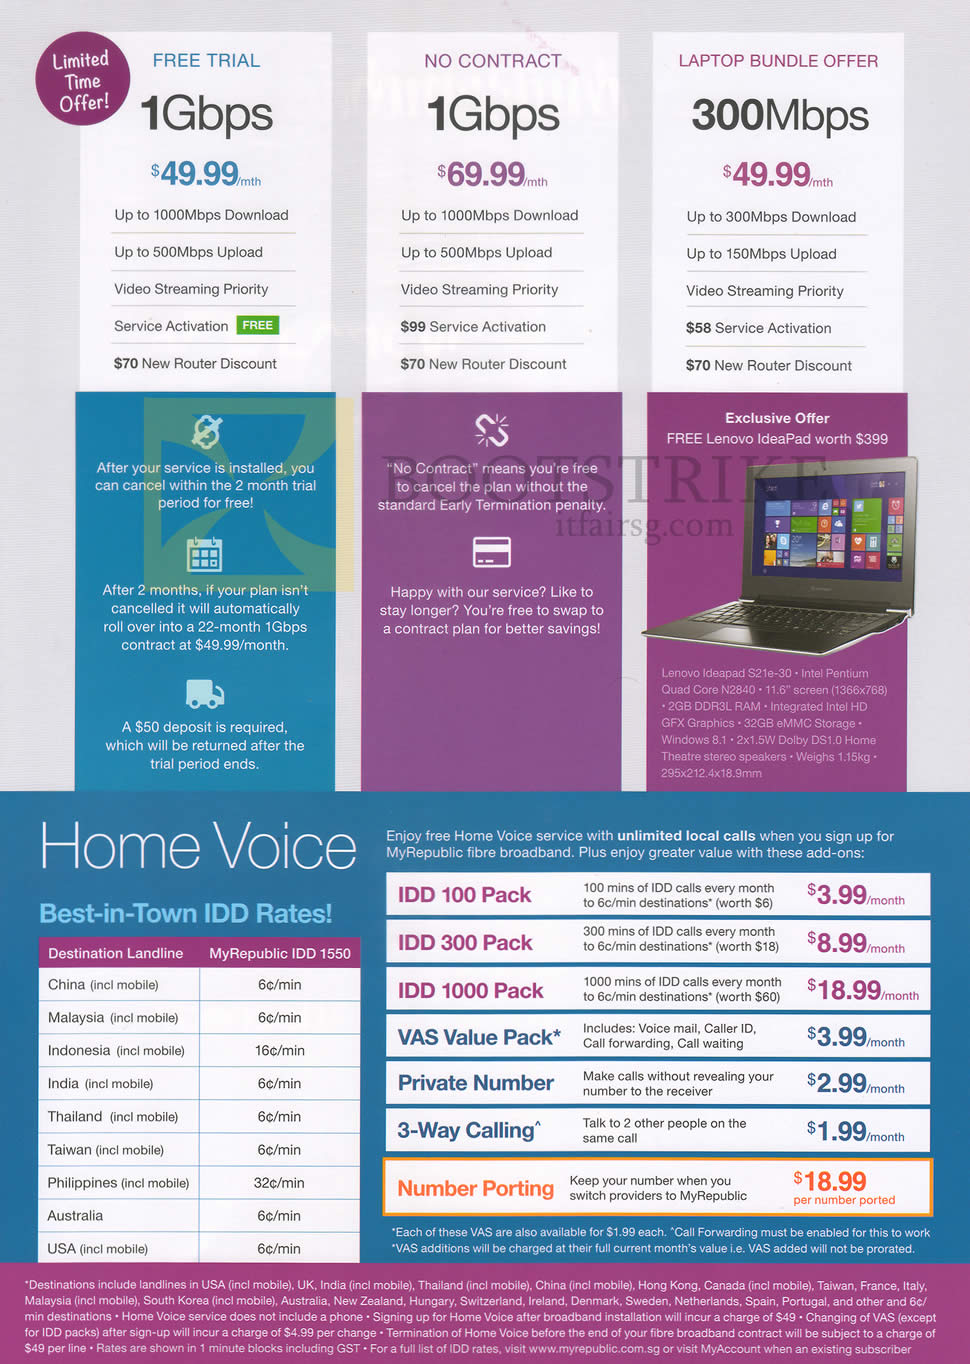 PC SHOW 2015 price list image brochure of MyRepublic 1Gbps Free Trial, No Contract, 300Mbps Laptop Bundle Offer, Home Voice